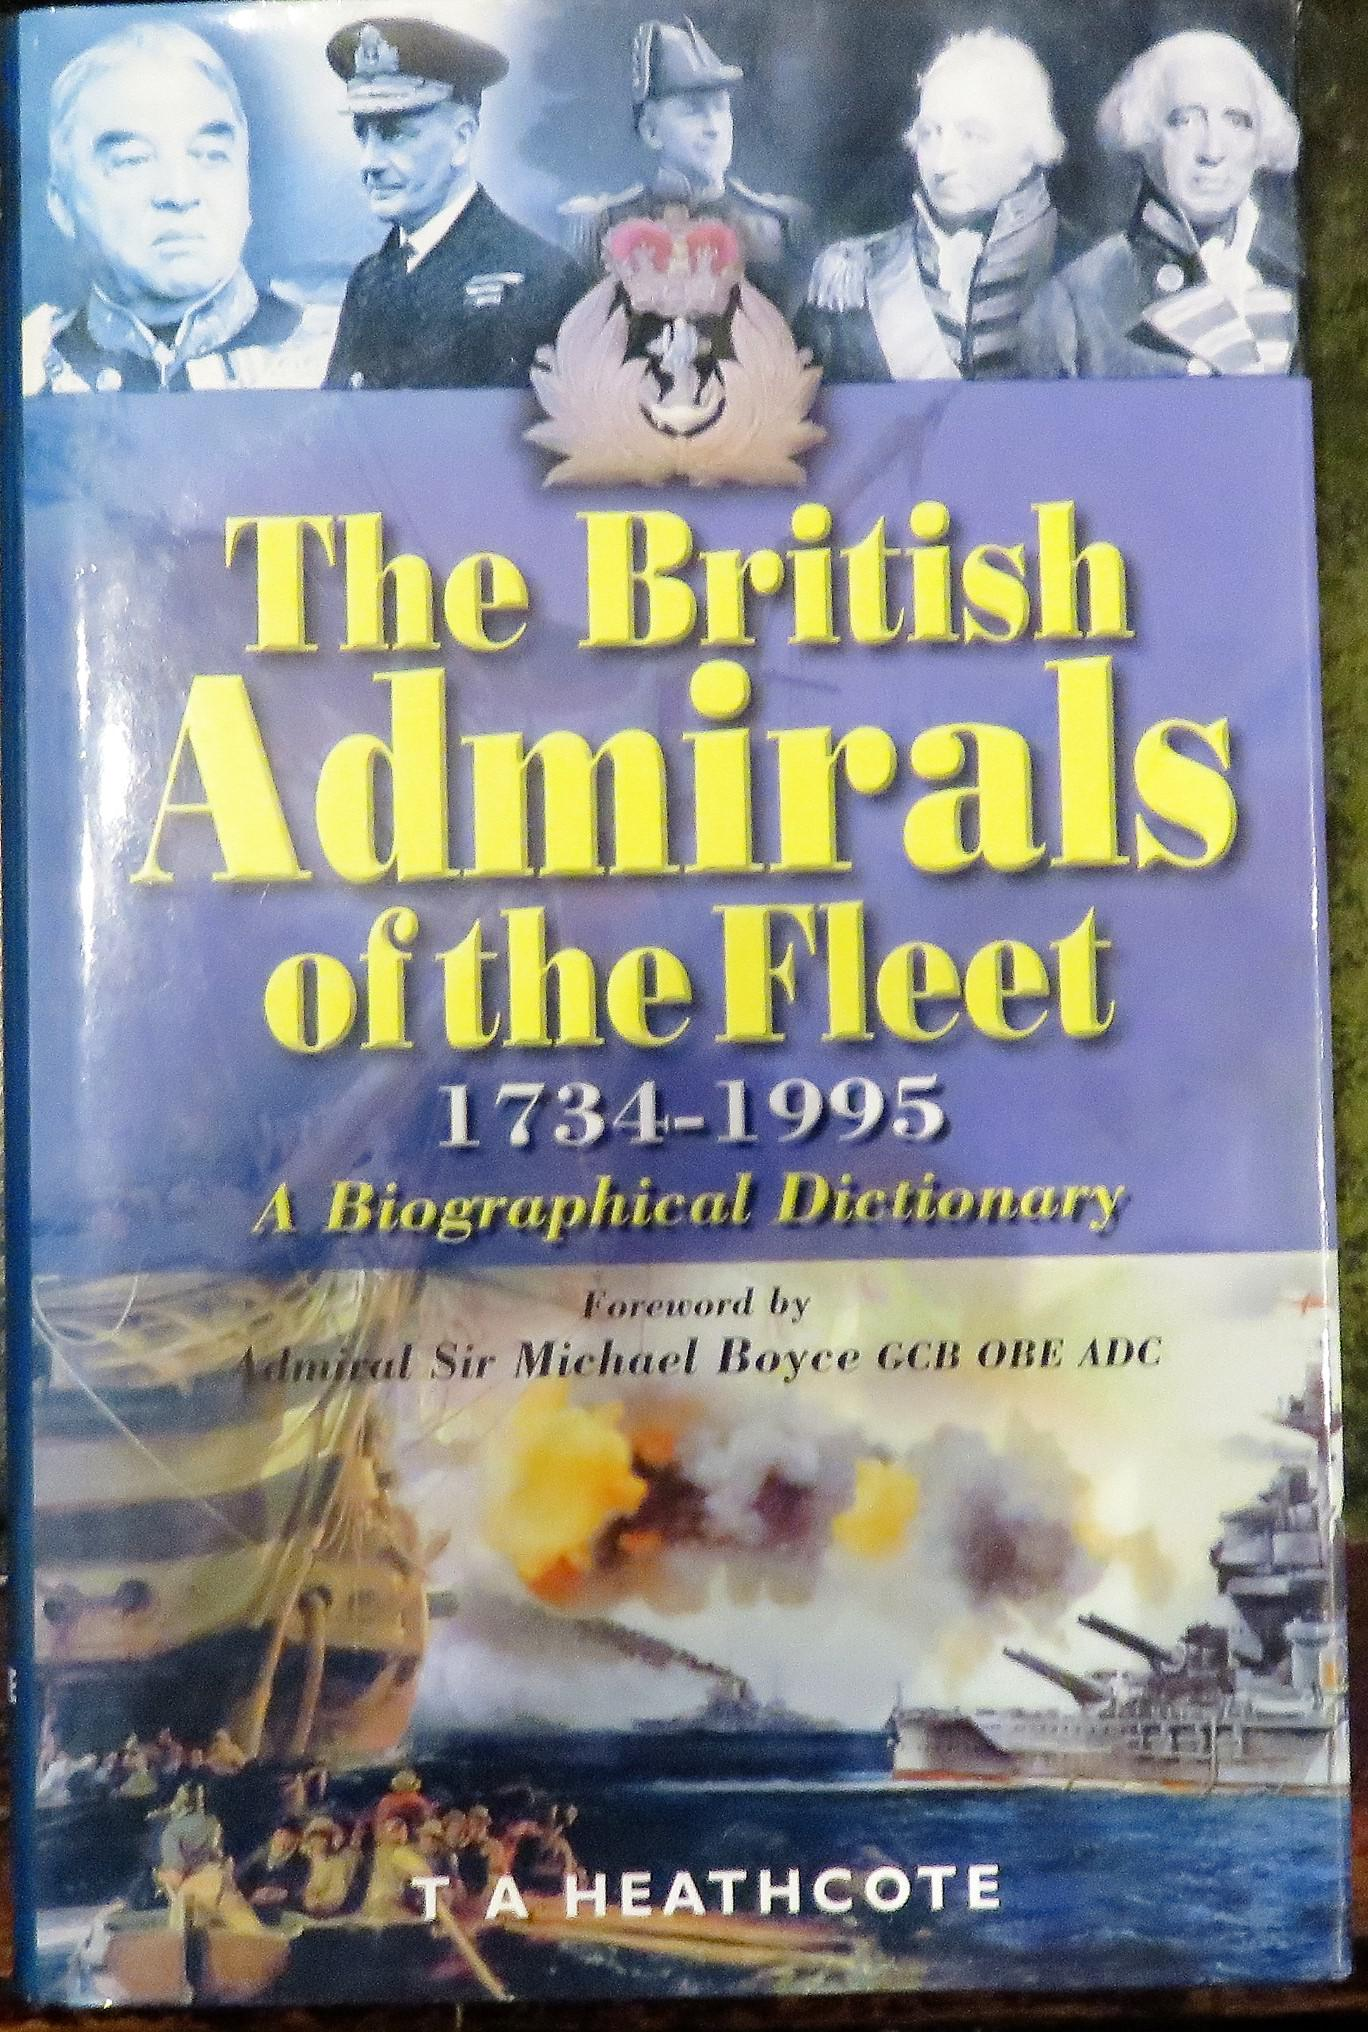 The British Admirals of the Fleet 1734-1995 A Biographical Dictionary.